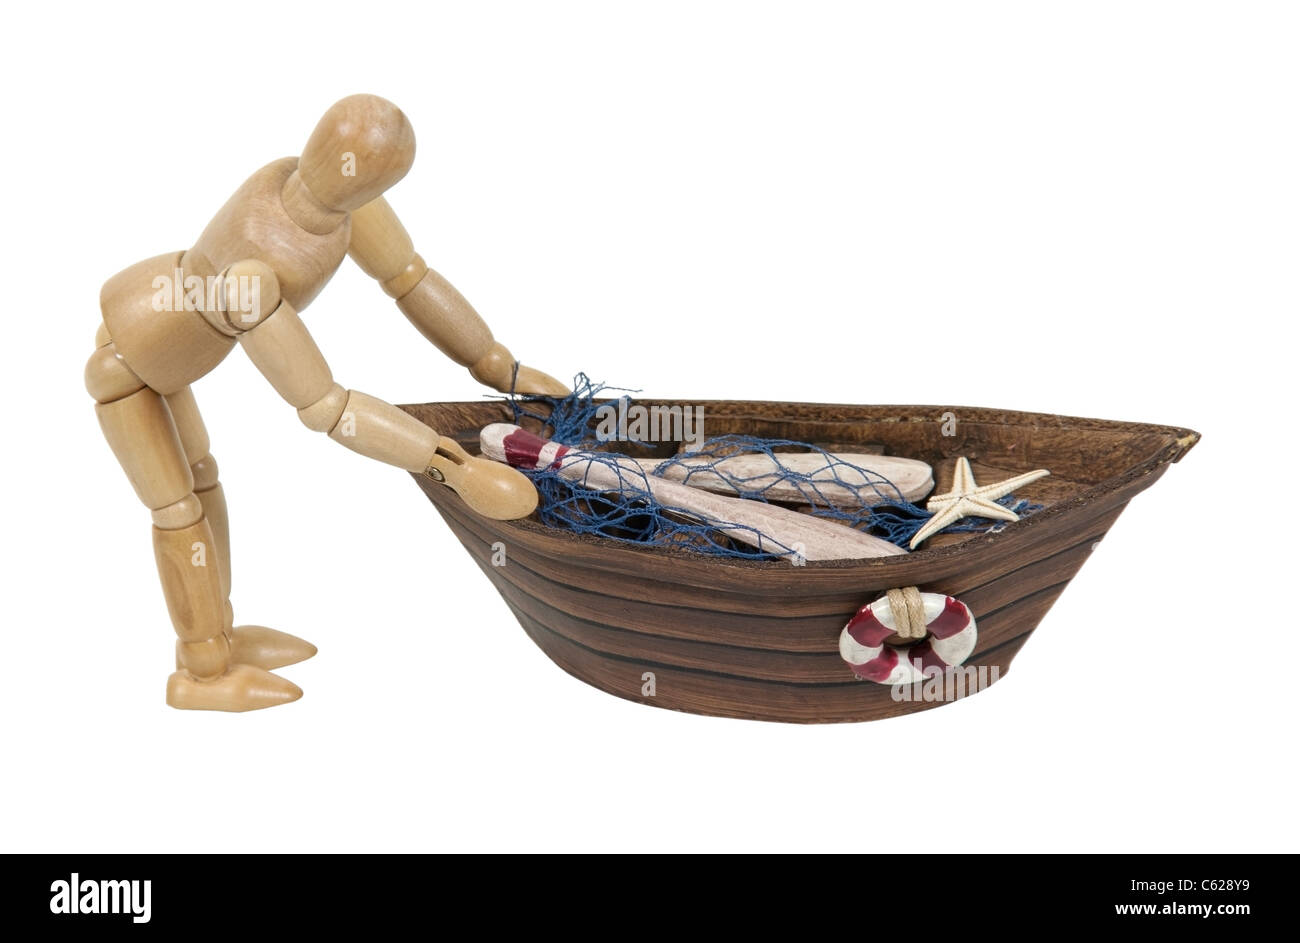 Wooden model representing a person pushing out a row boat with nets - path included - Stock Image